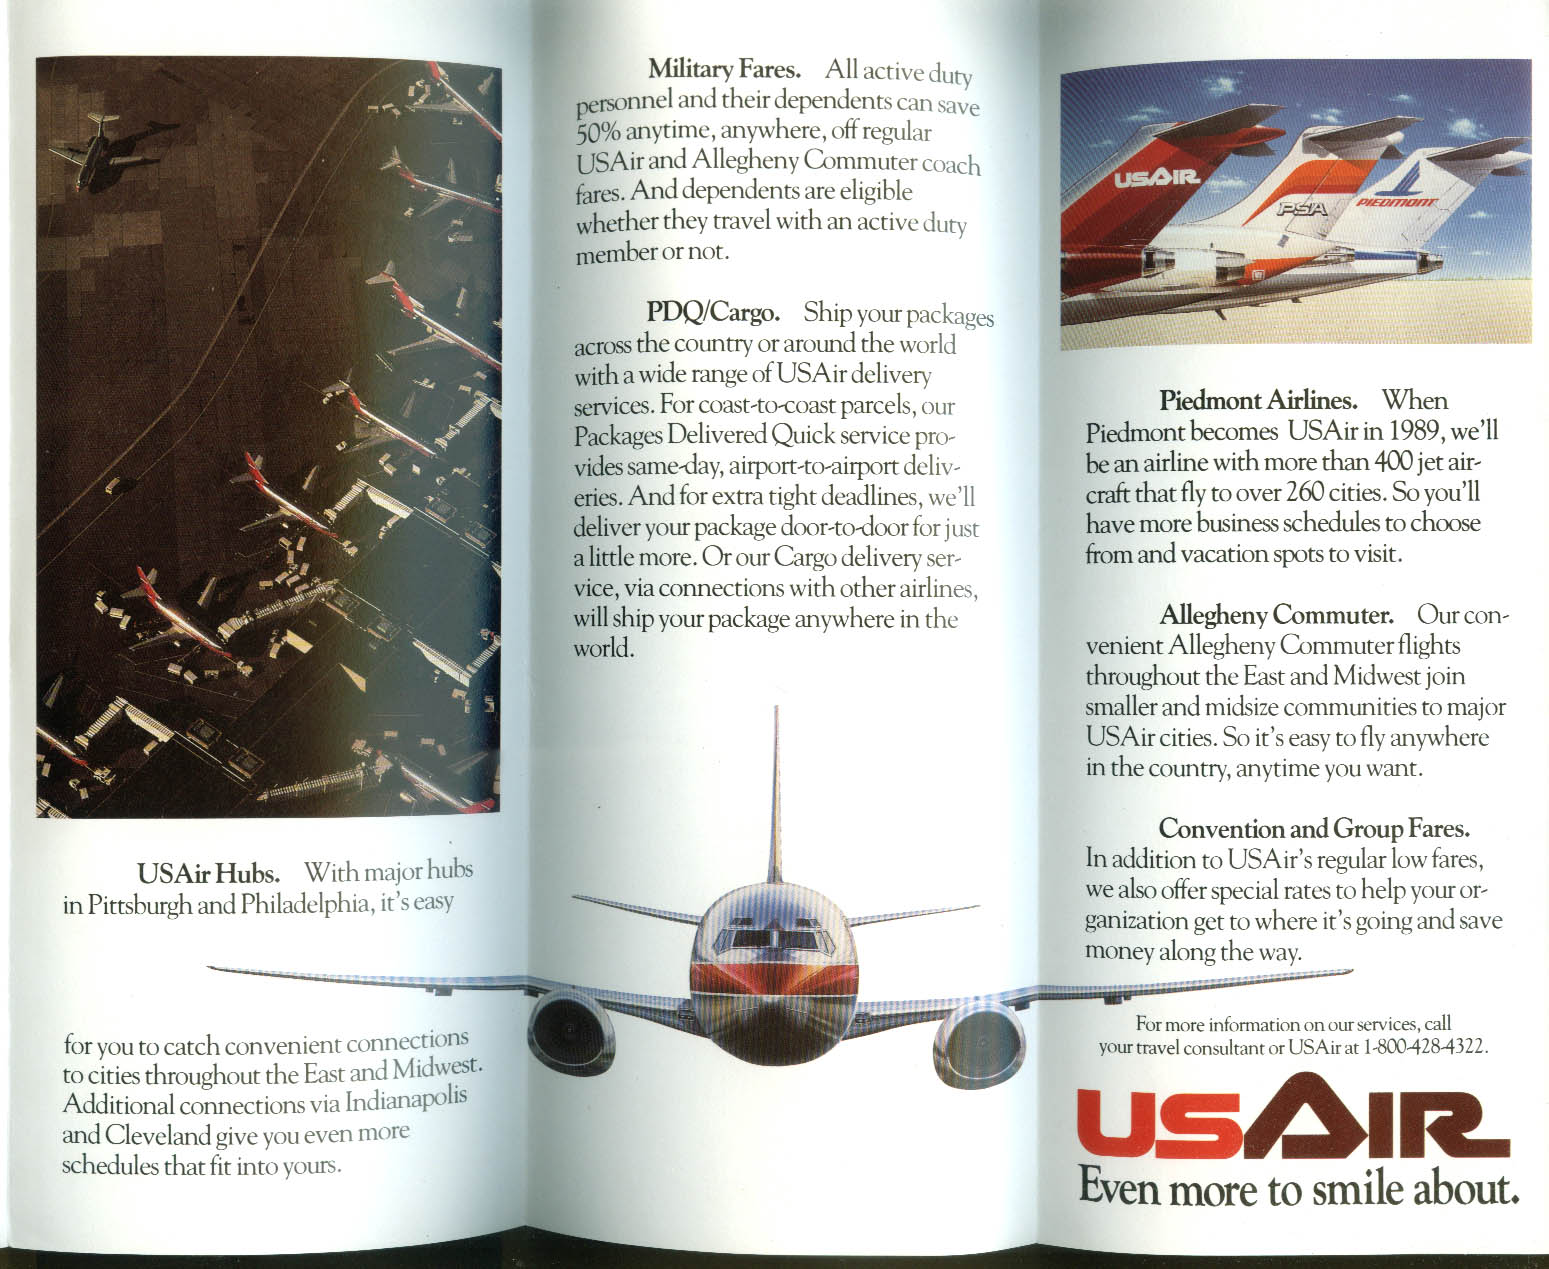 Smile! Pacific Southwest Airlines is now USAir airline folder 1987